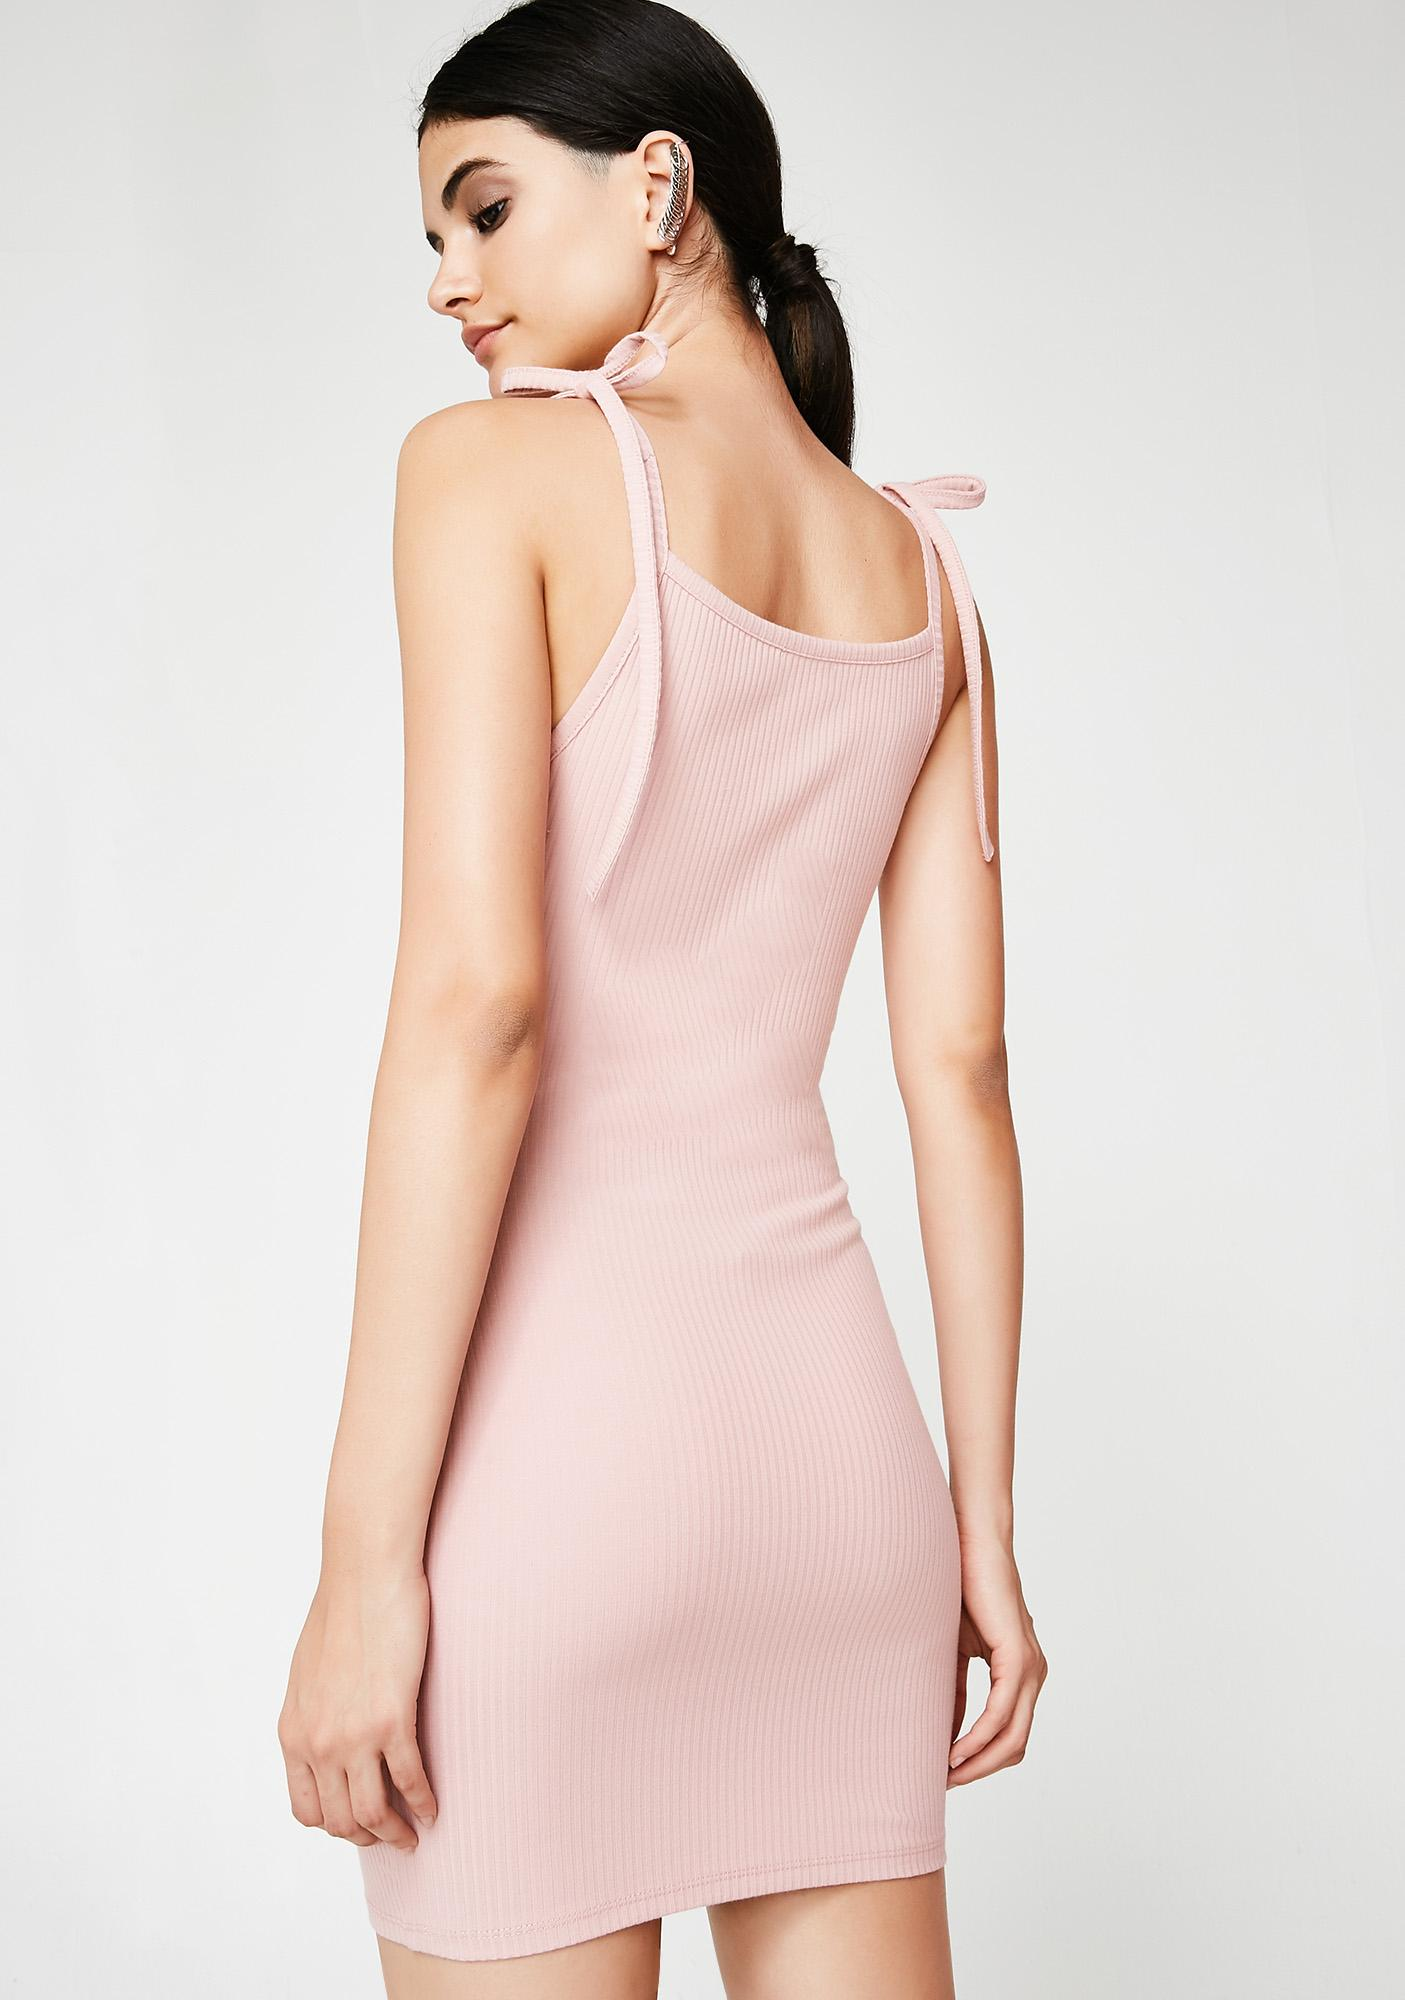 Don't Call Me Bodycon Dress